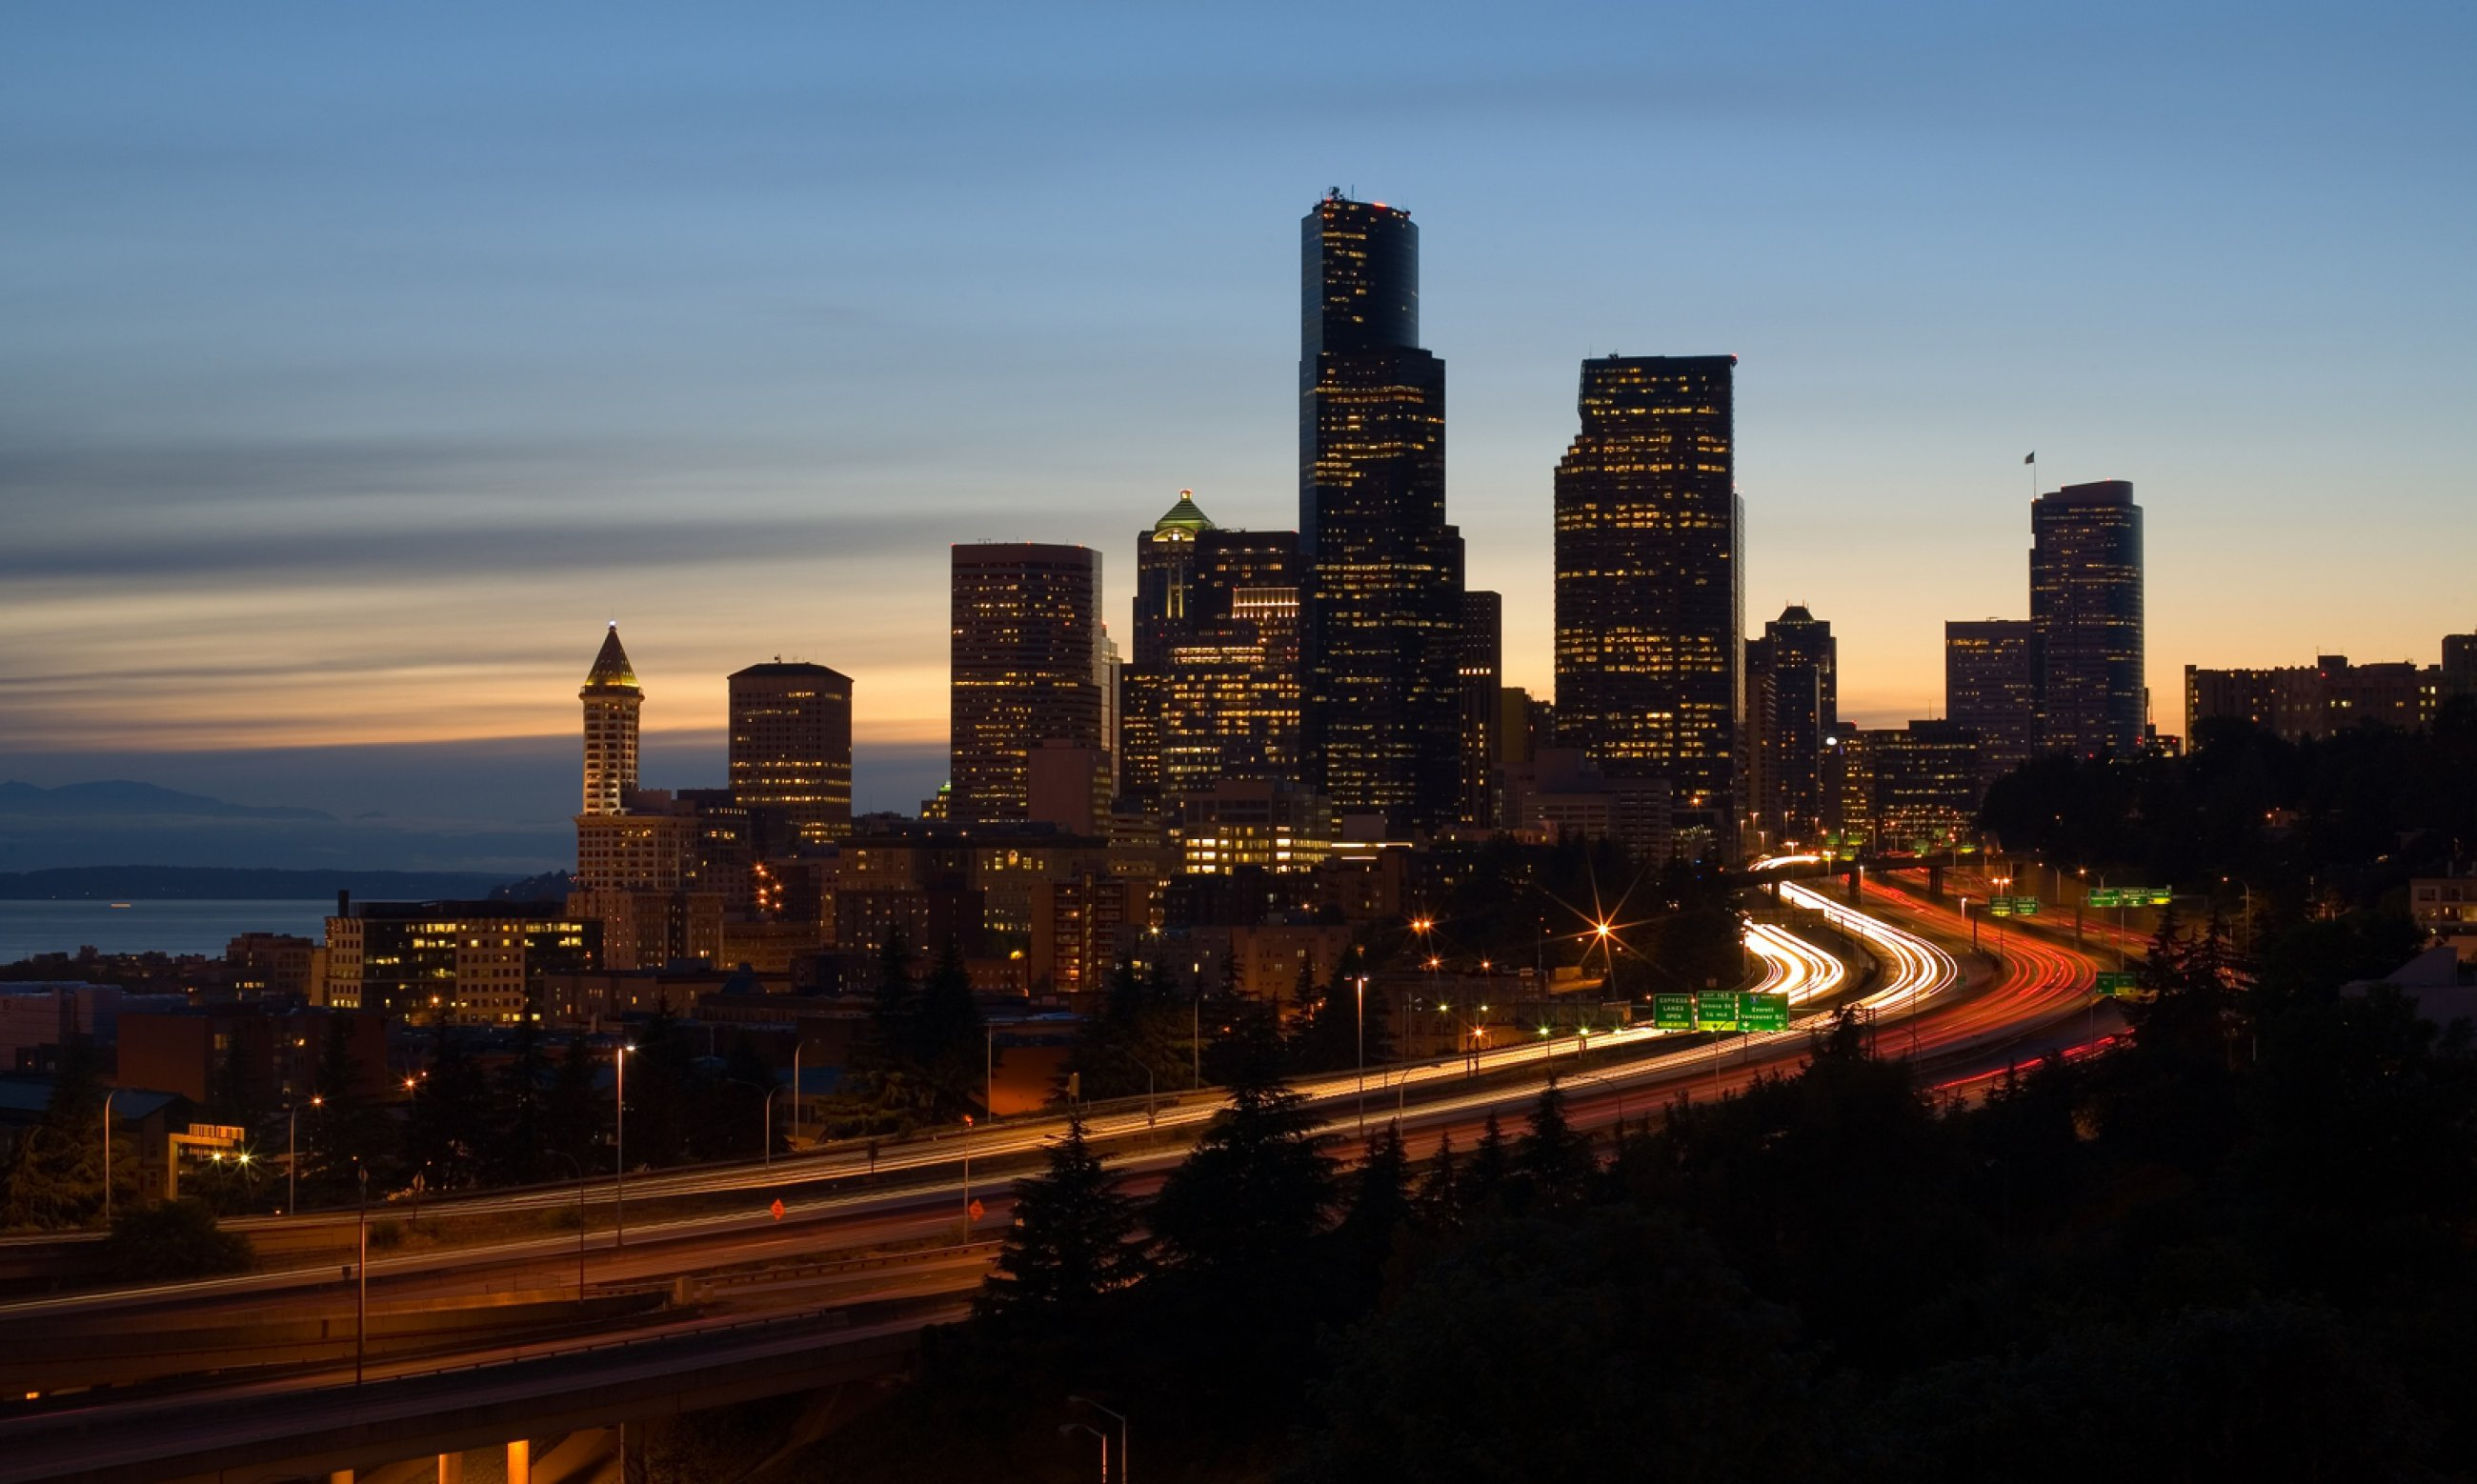 https://bubo.sk/uploads/galleries/7360/wikipdia-seattlei5skyline.jpg